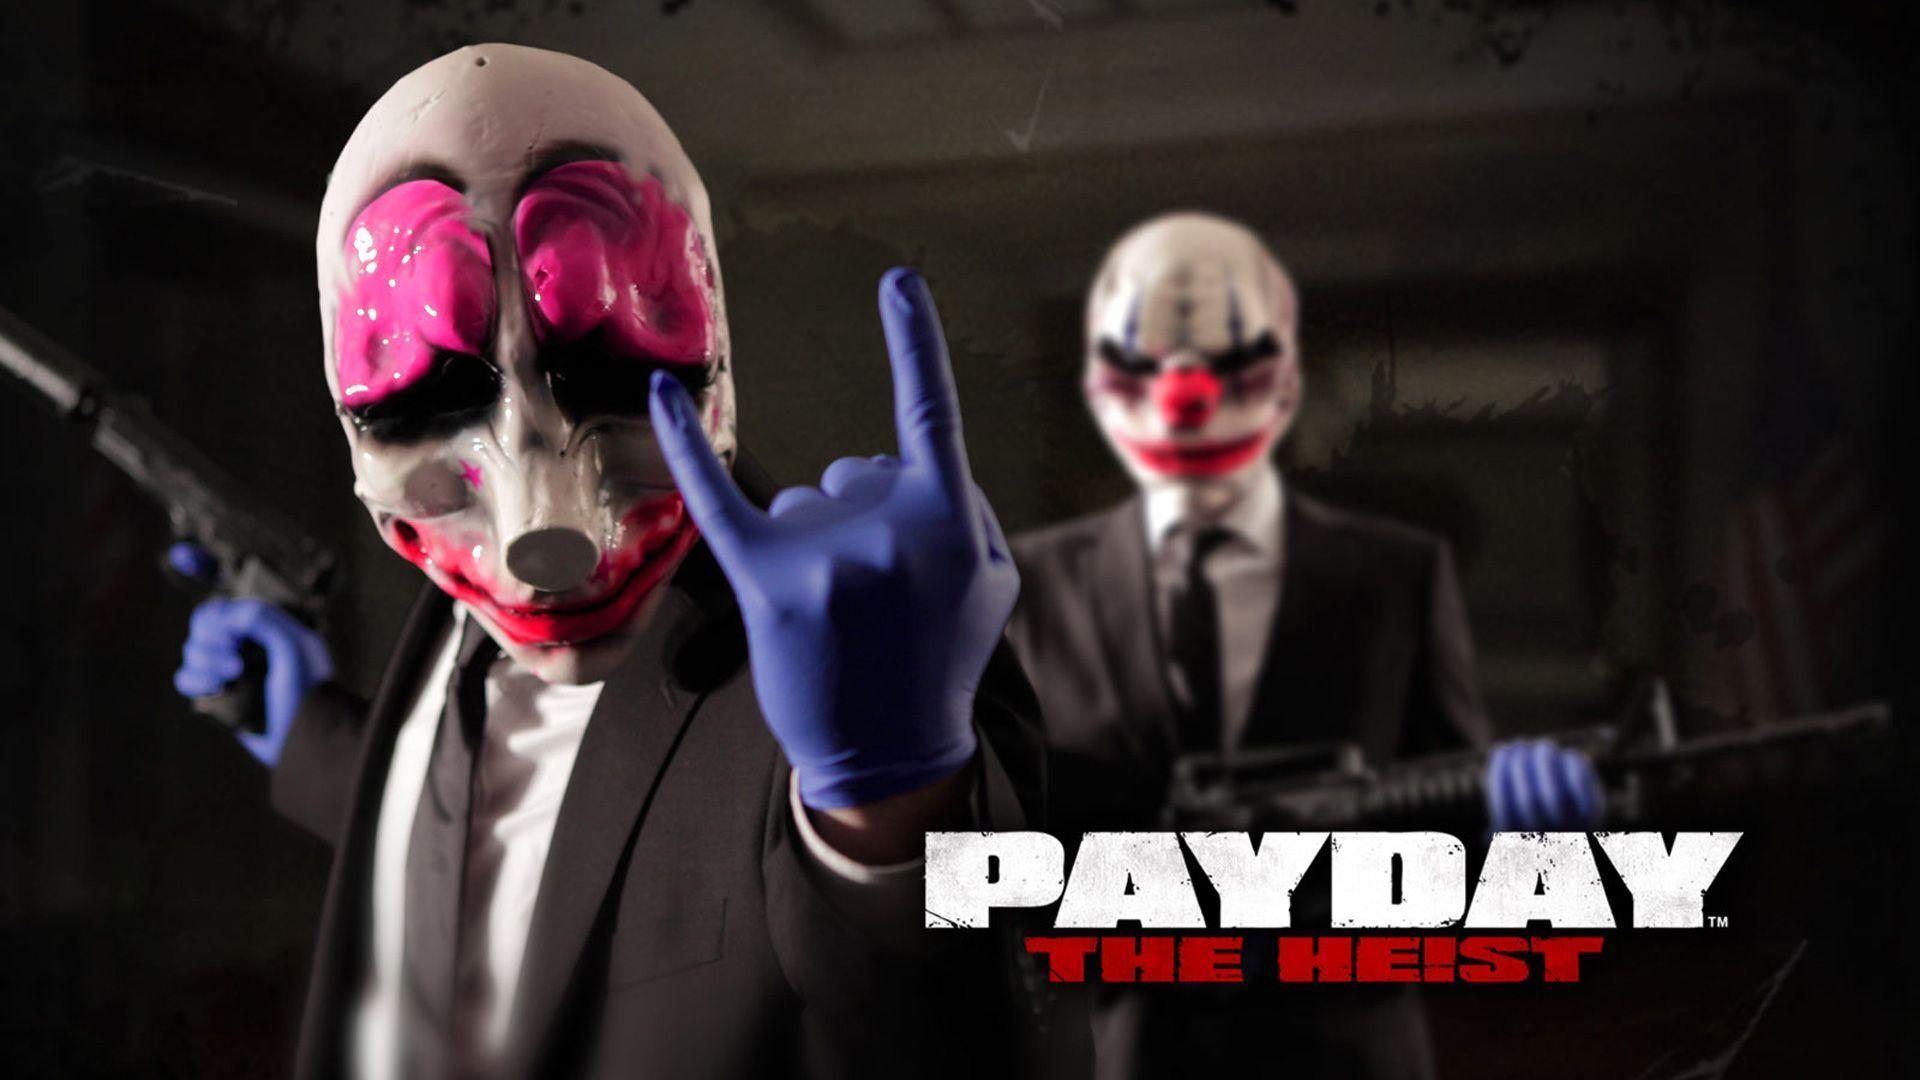 Payday The Heist HD Wallpaper